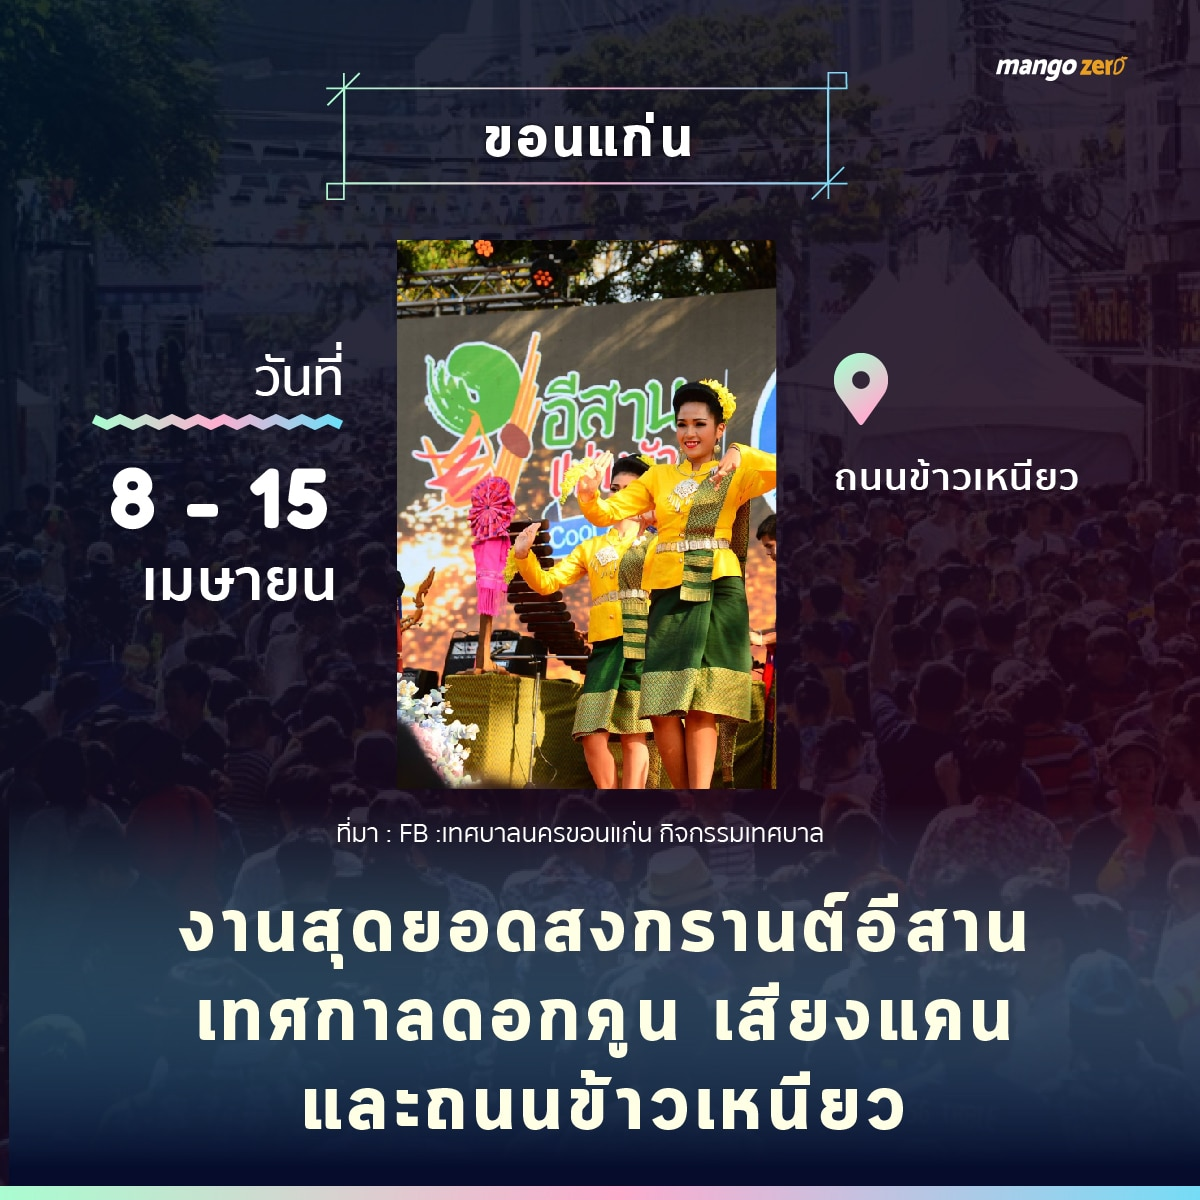 songkran-2018-events-thailand-11-09-04